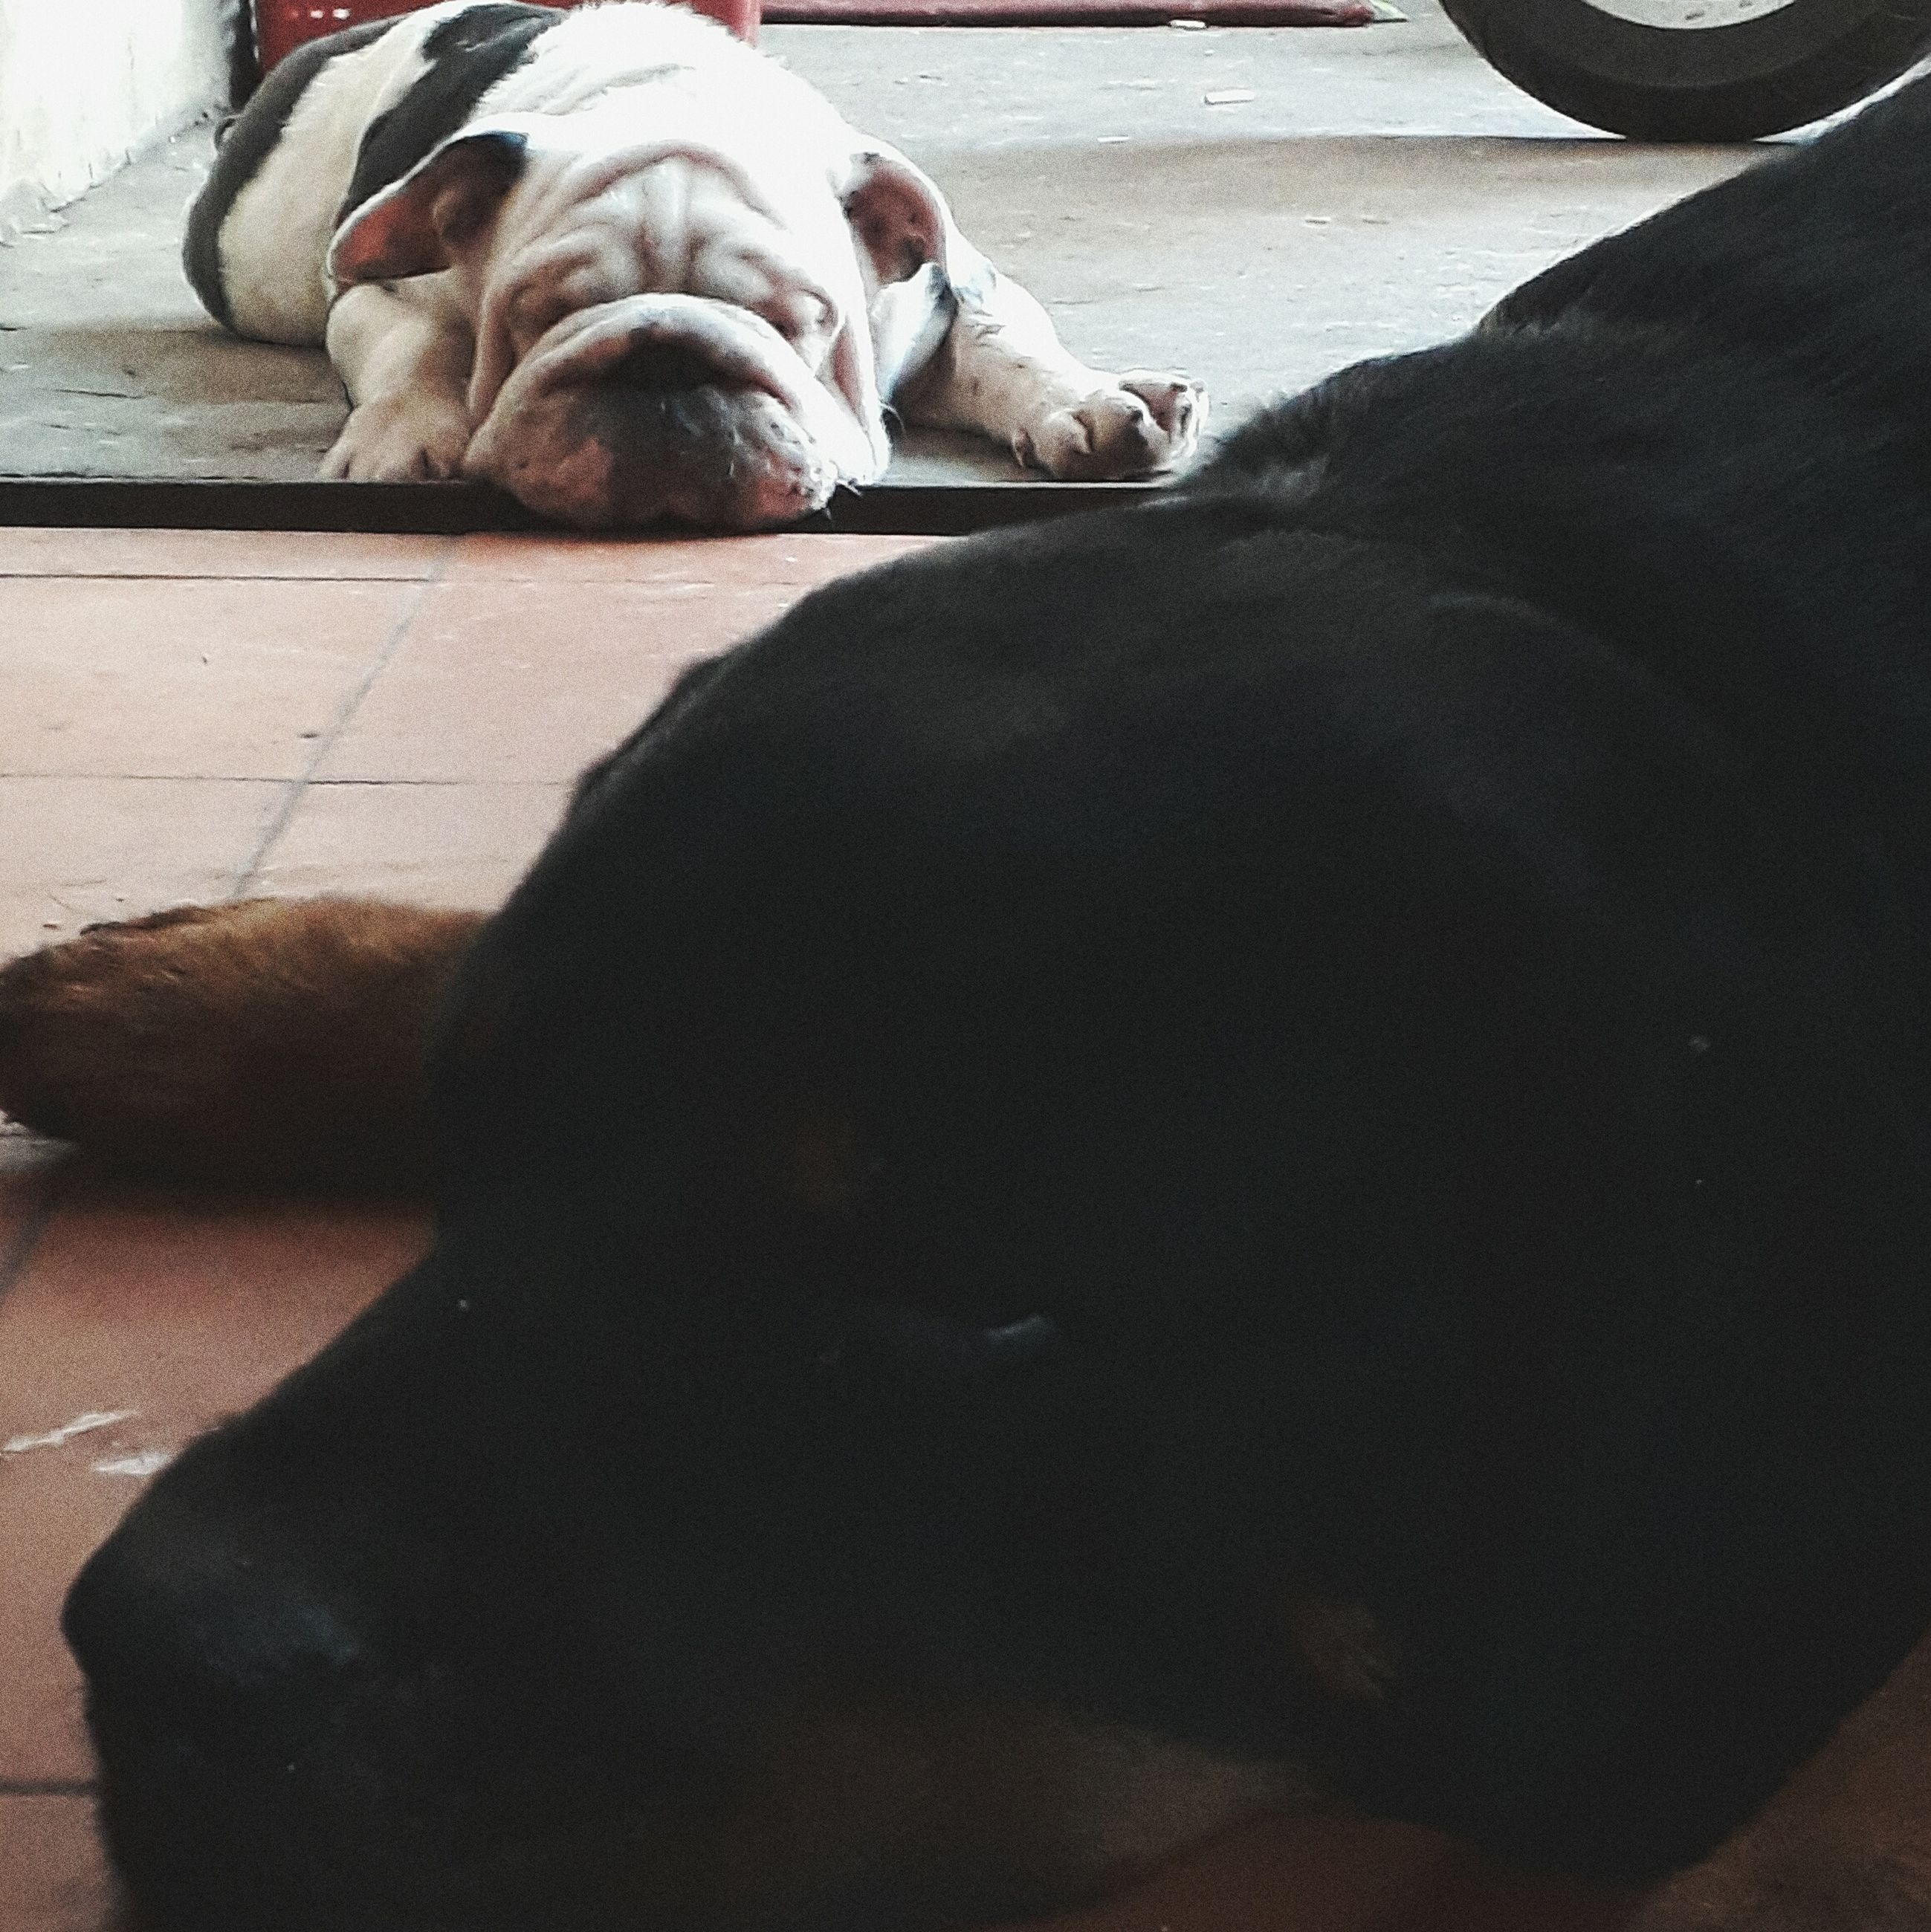 dog, pets, one animal, domestic animals, animal themes, mammal, sleeping, indoors, relaxation, lying down, day, no people, close-up